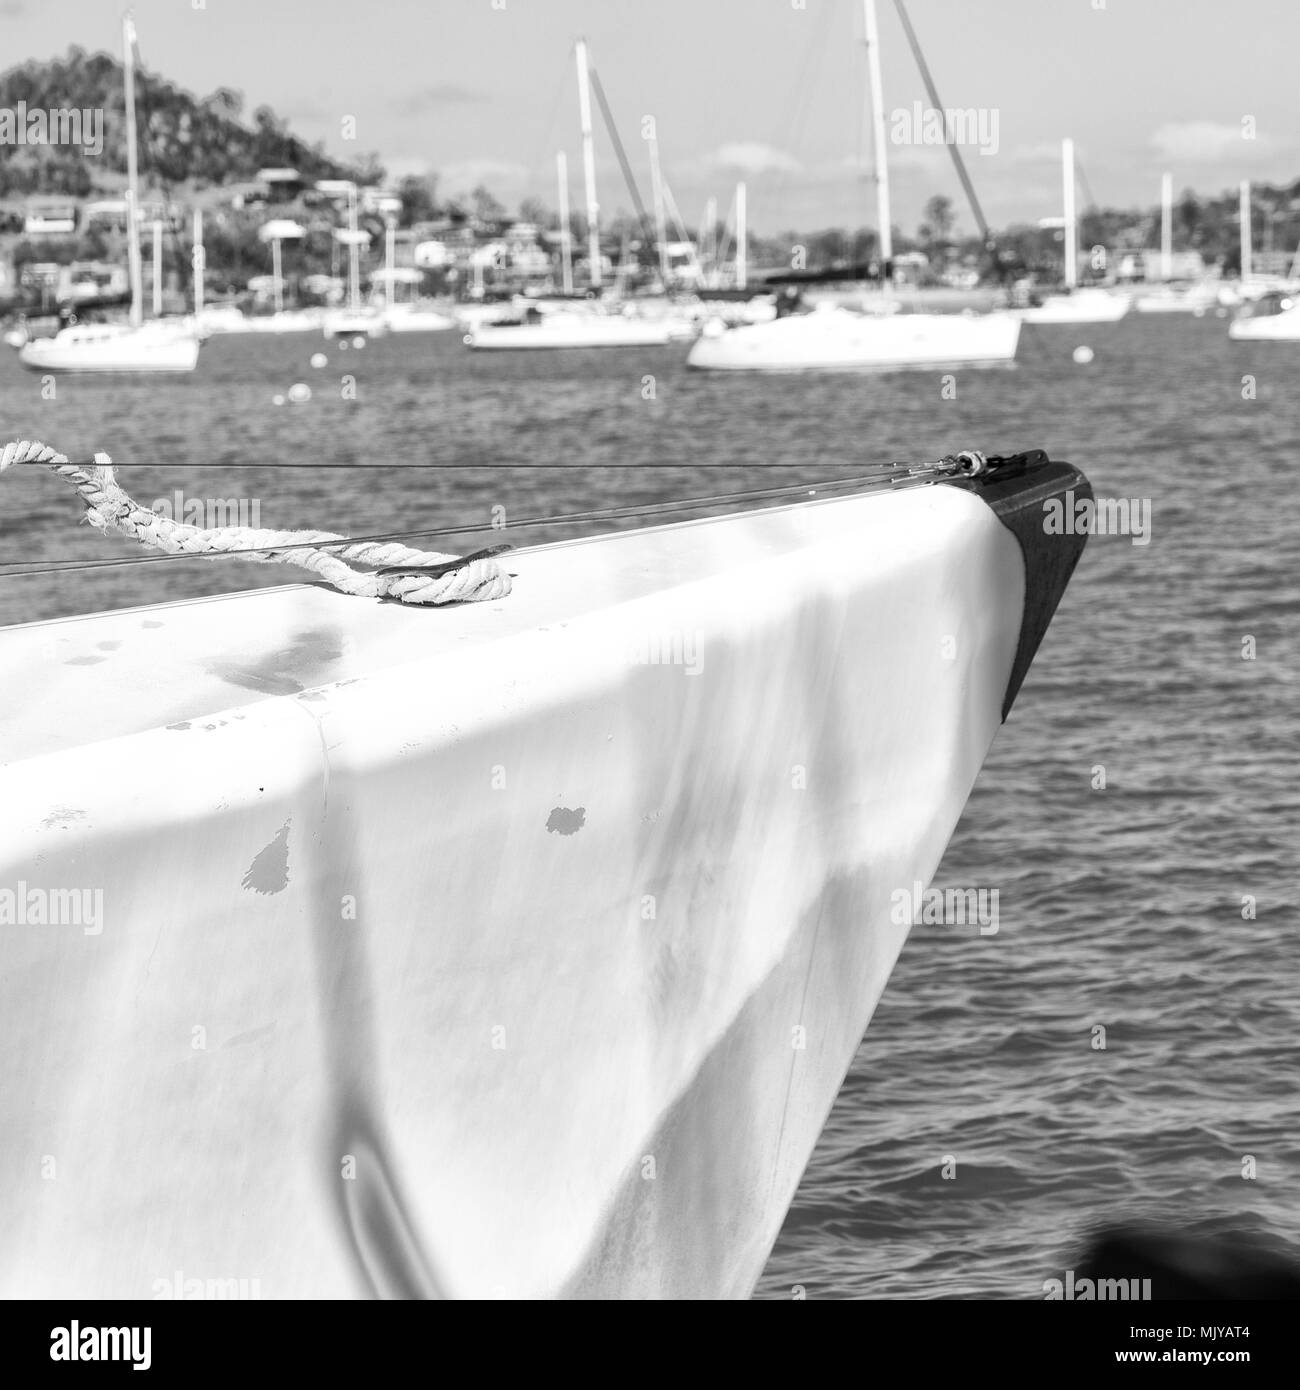 in  australia the concept of sailing with catamaran prow in the ocean and harbor Stock Photo